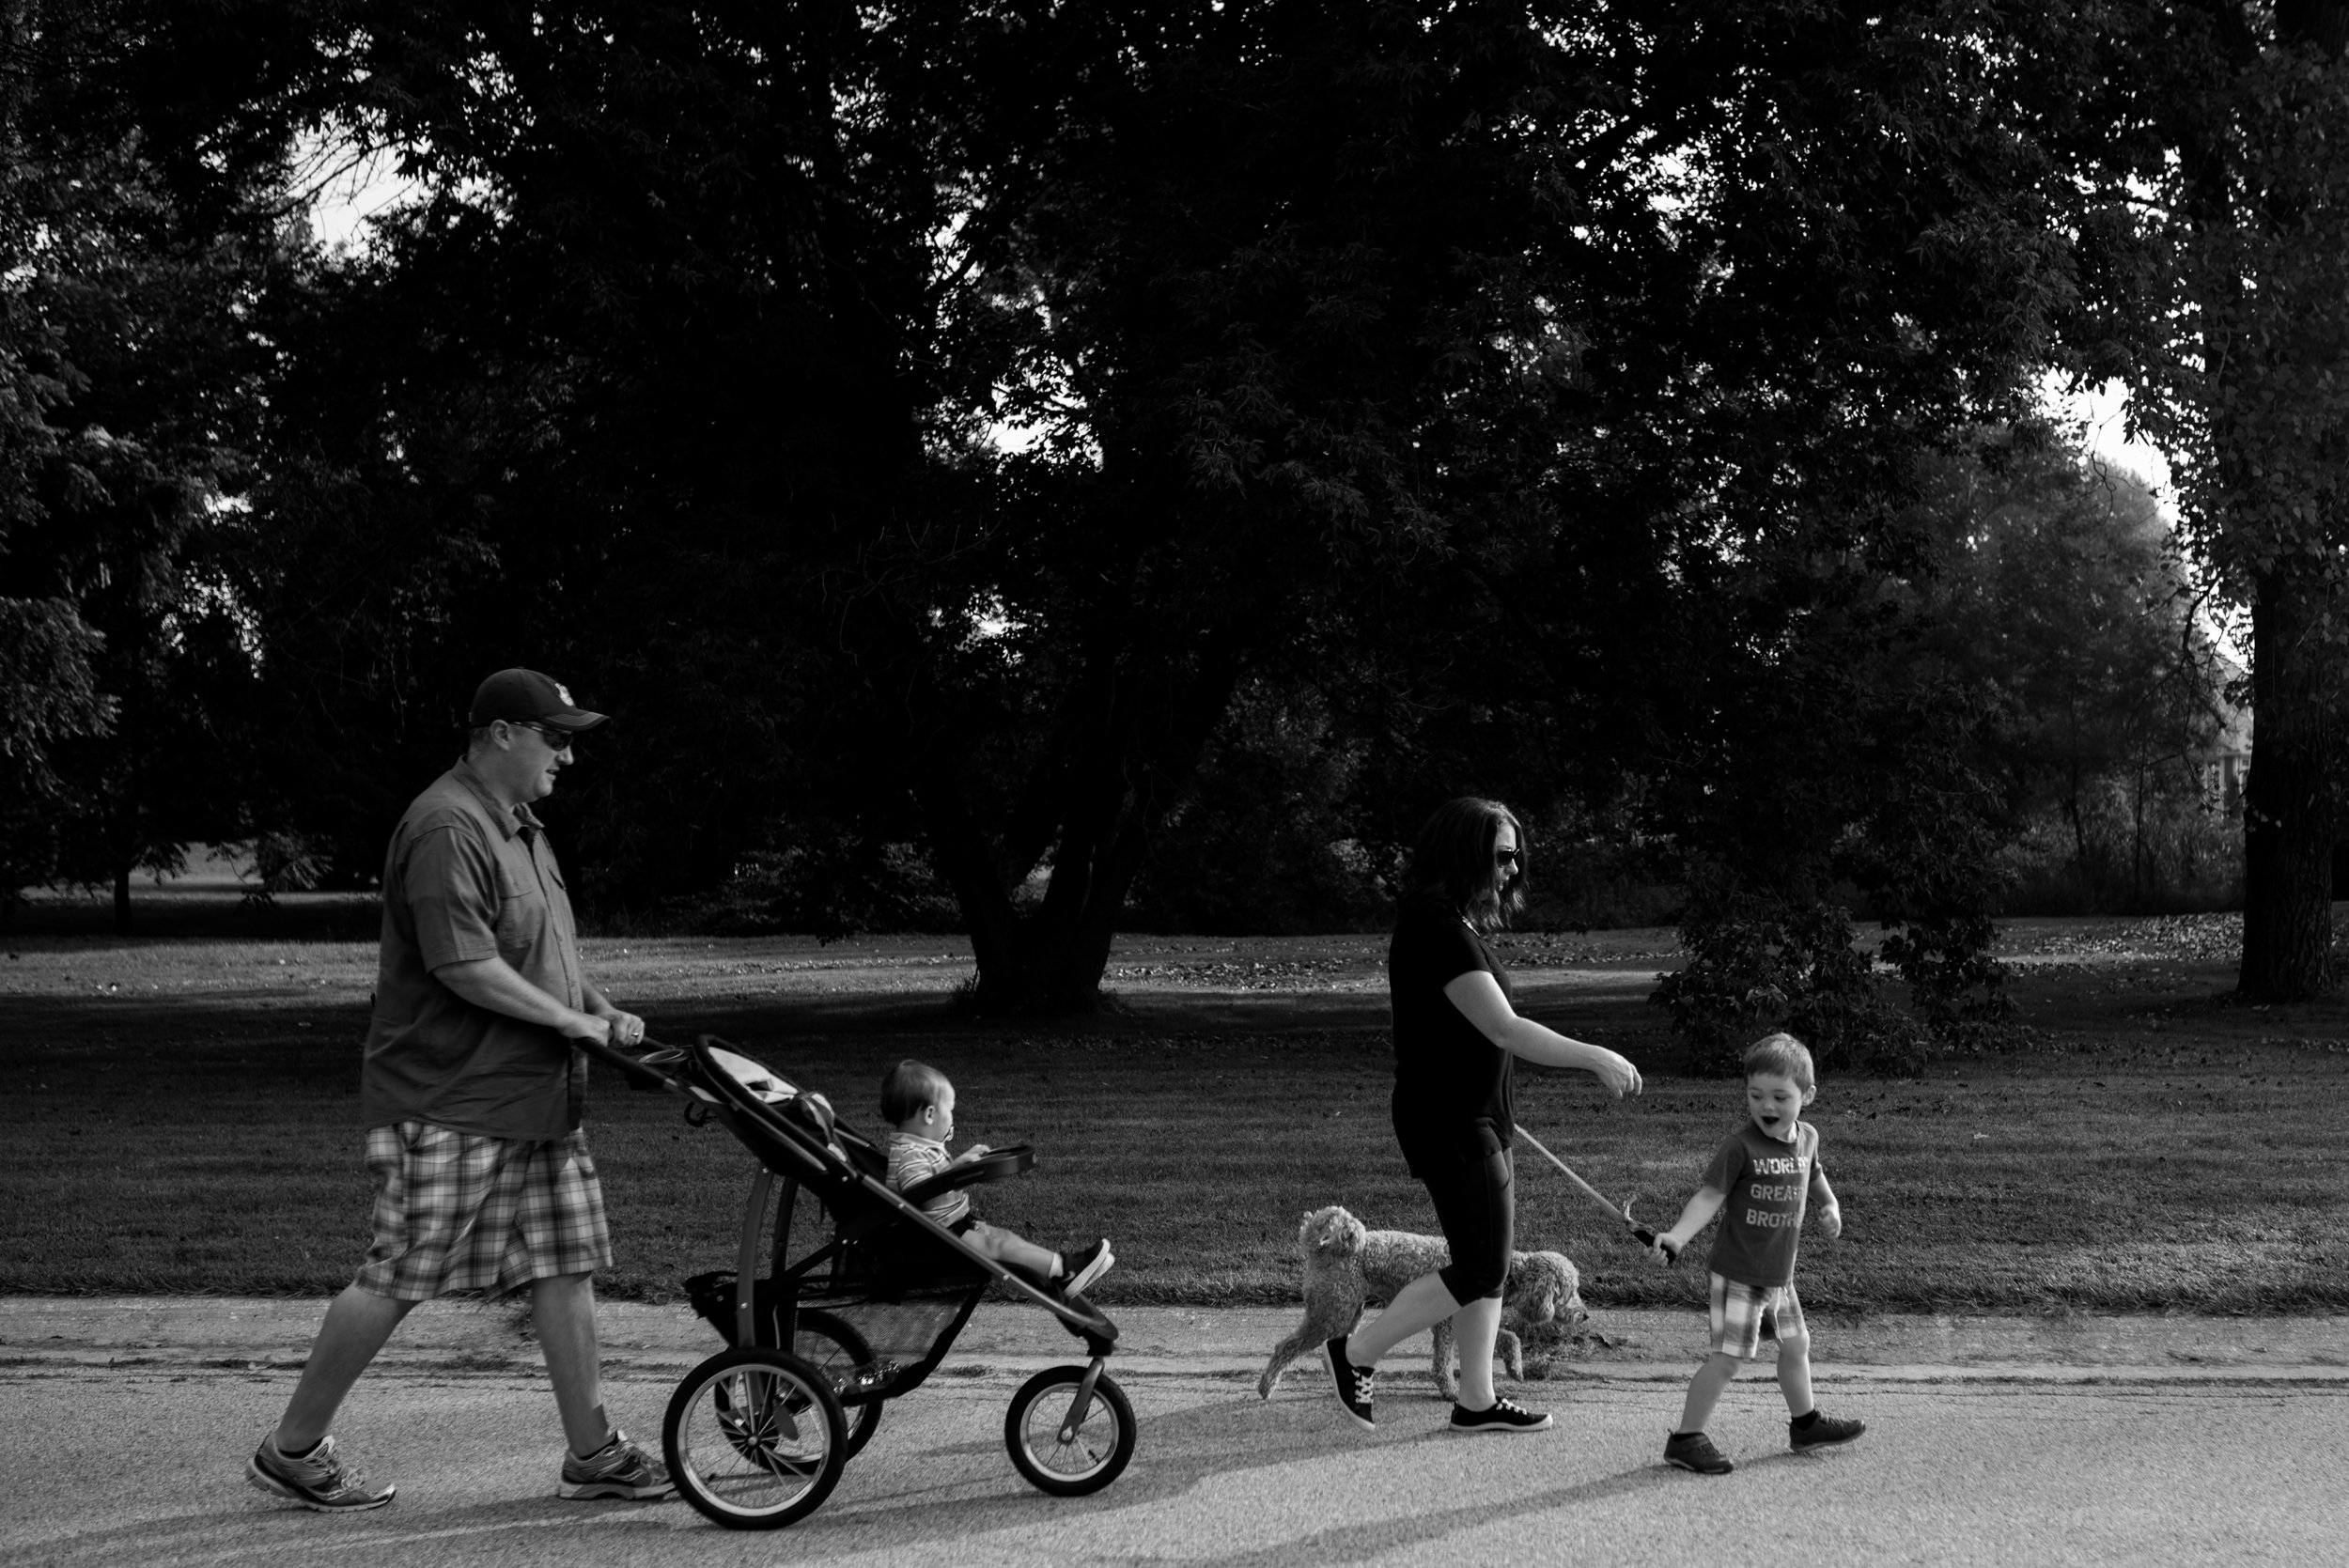 Family walking down the road. Dad pushing stroller with toddler boy, mom and son walking dog